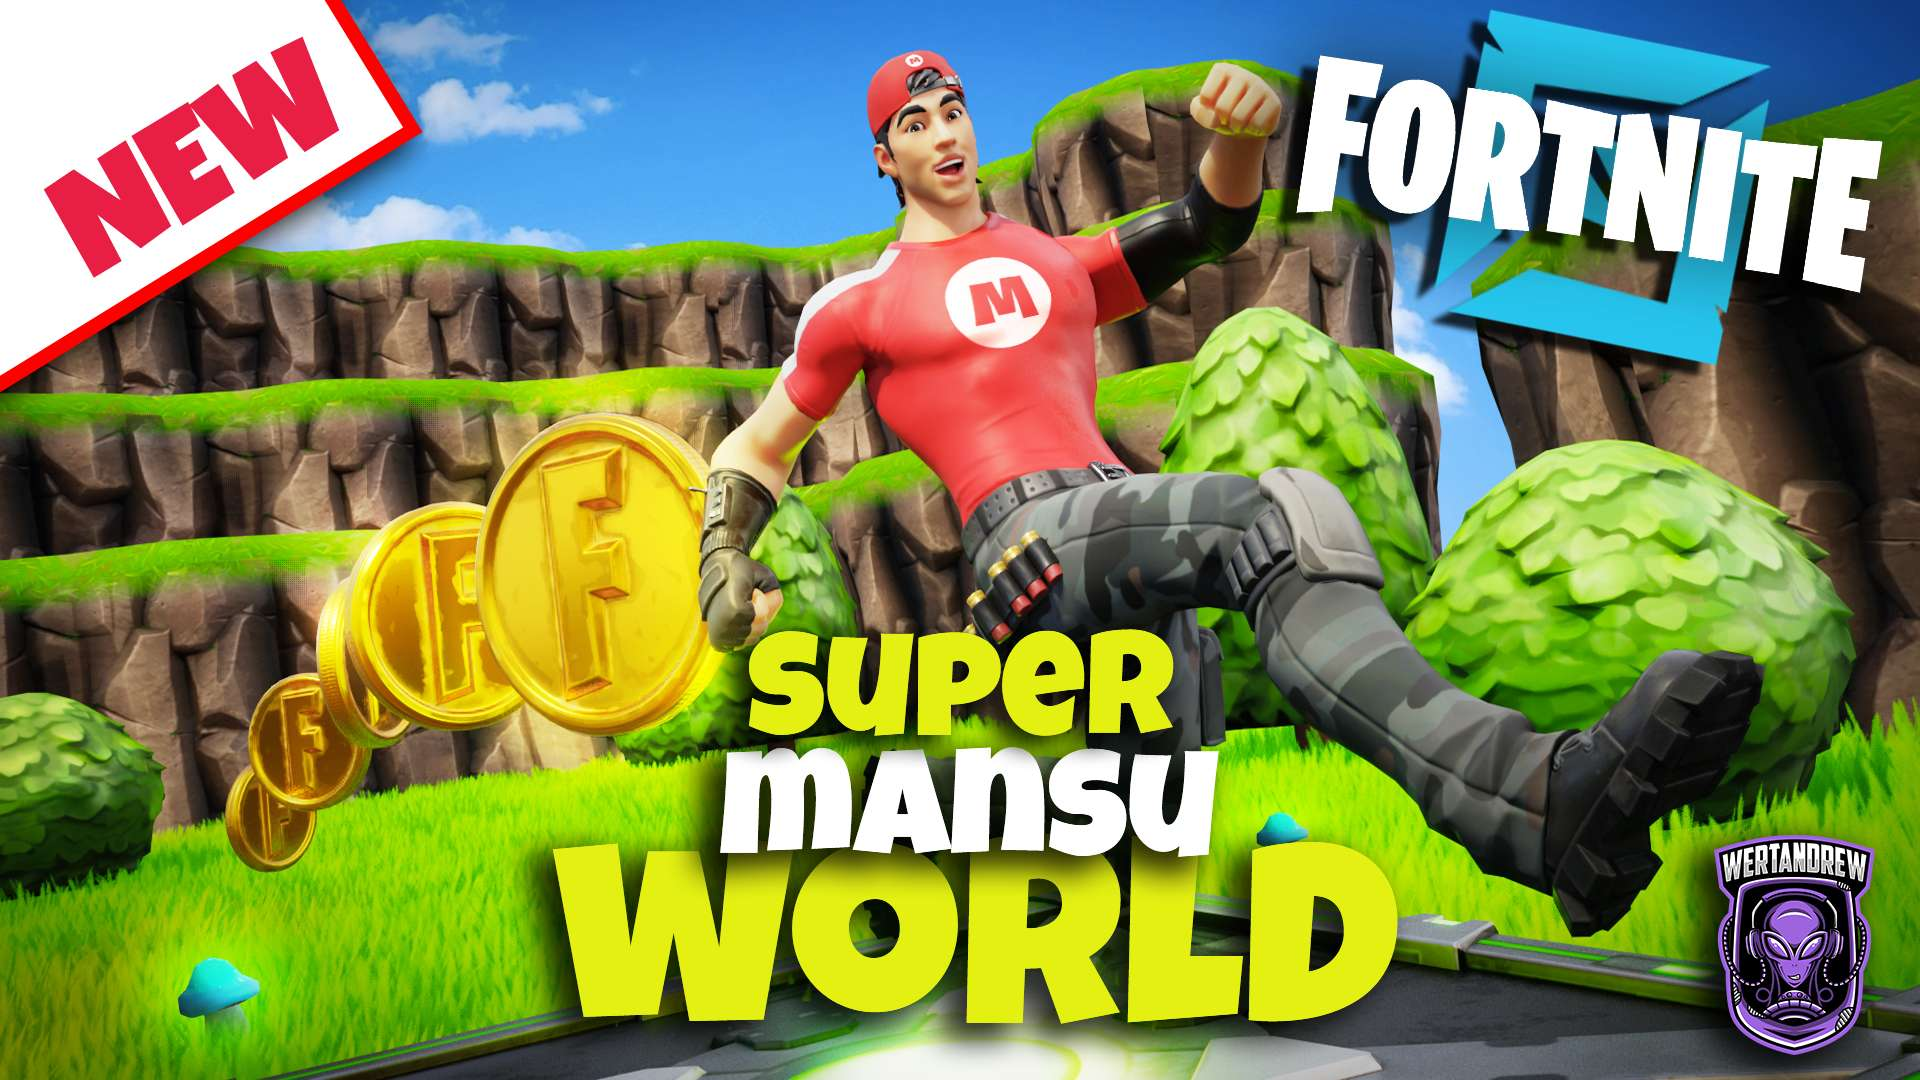 🍄SUPER MANSU WORLD🍄